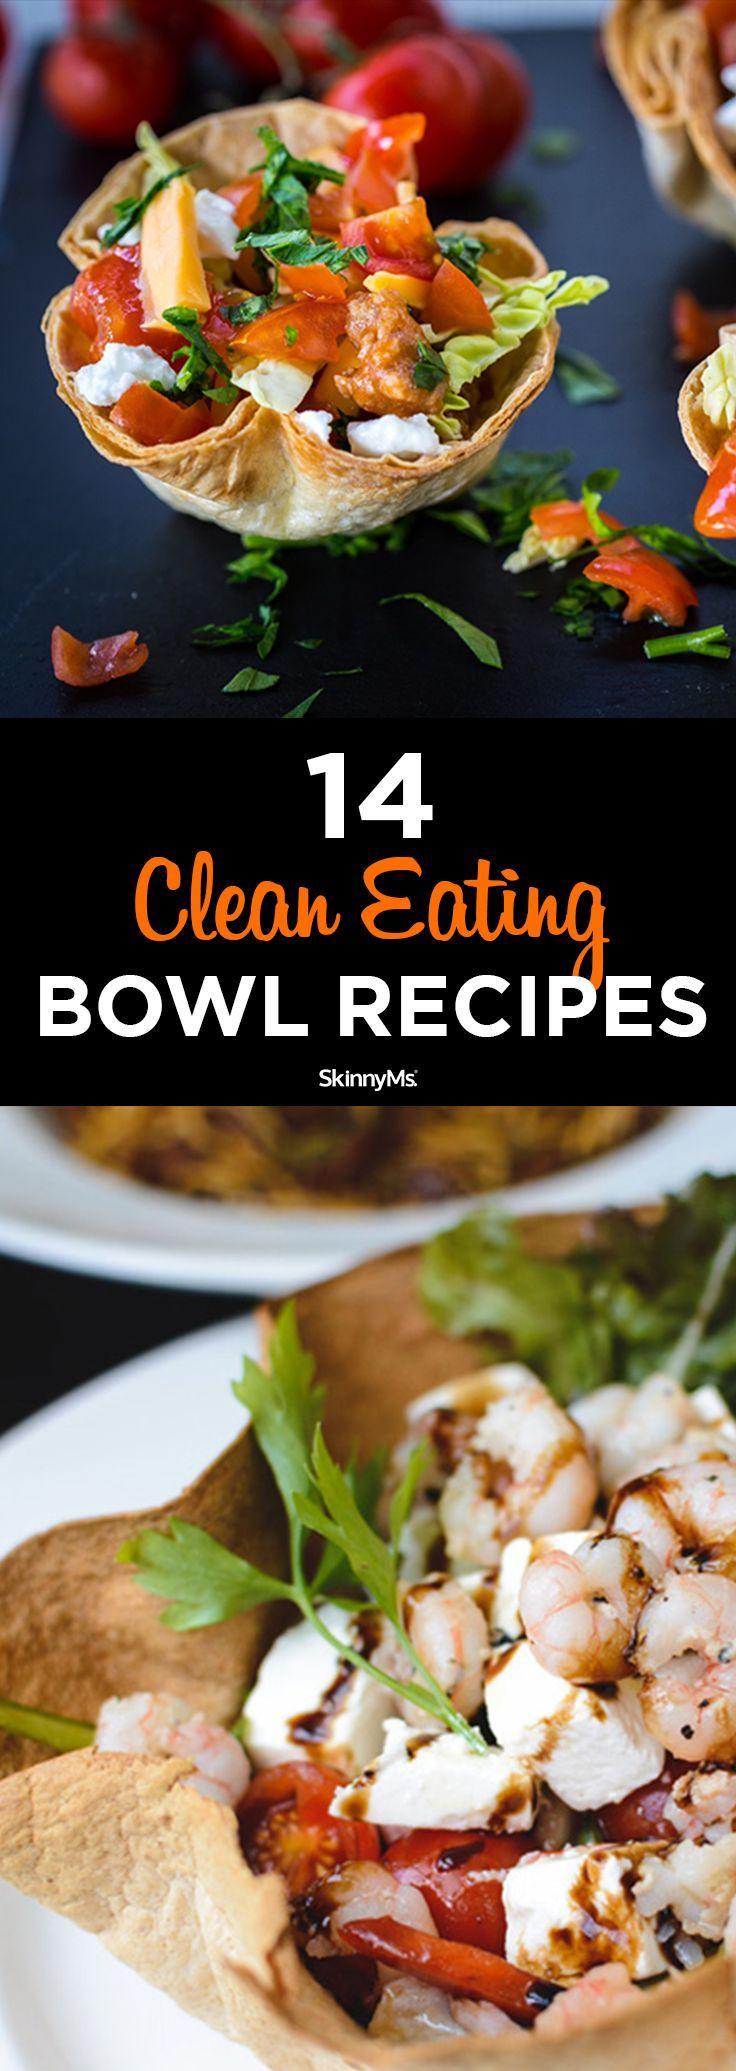 14 Clean Eating Bowl Recipes